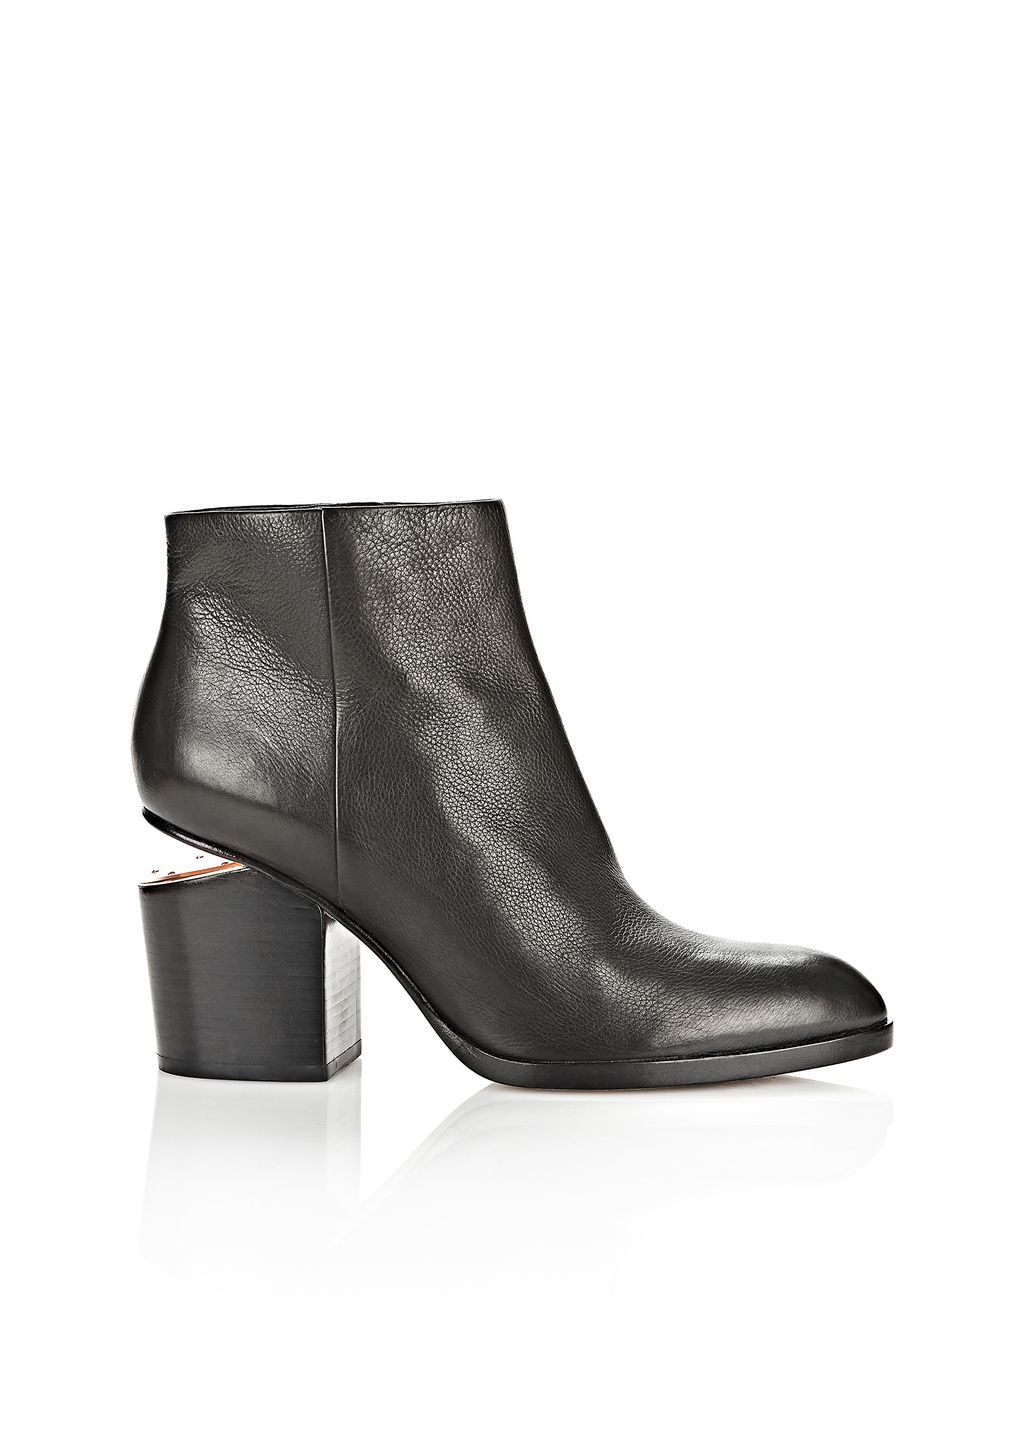 Lyst  Alexander Wang Gabi Ankle Boots in Black